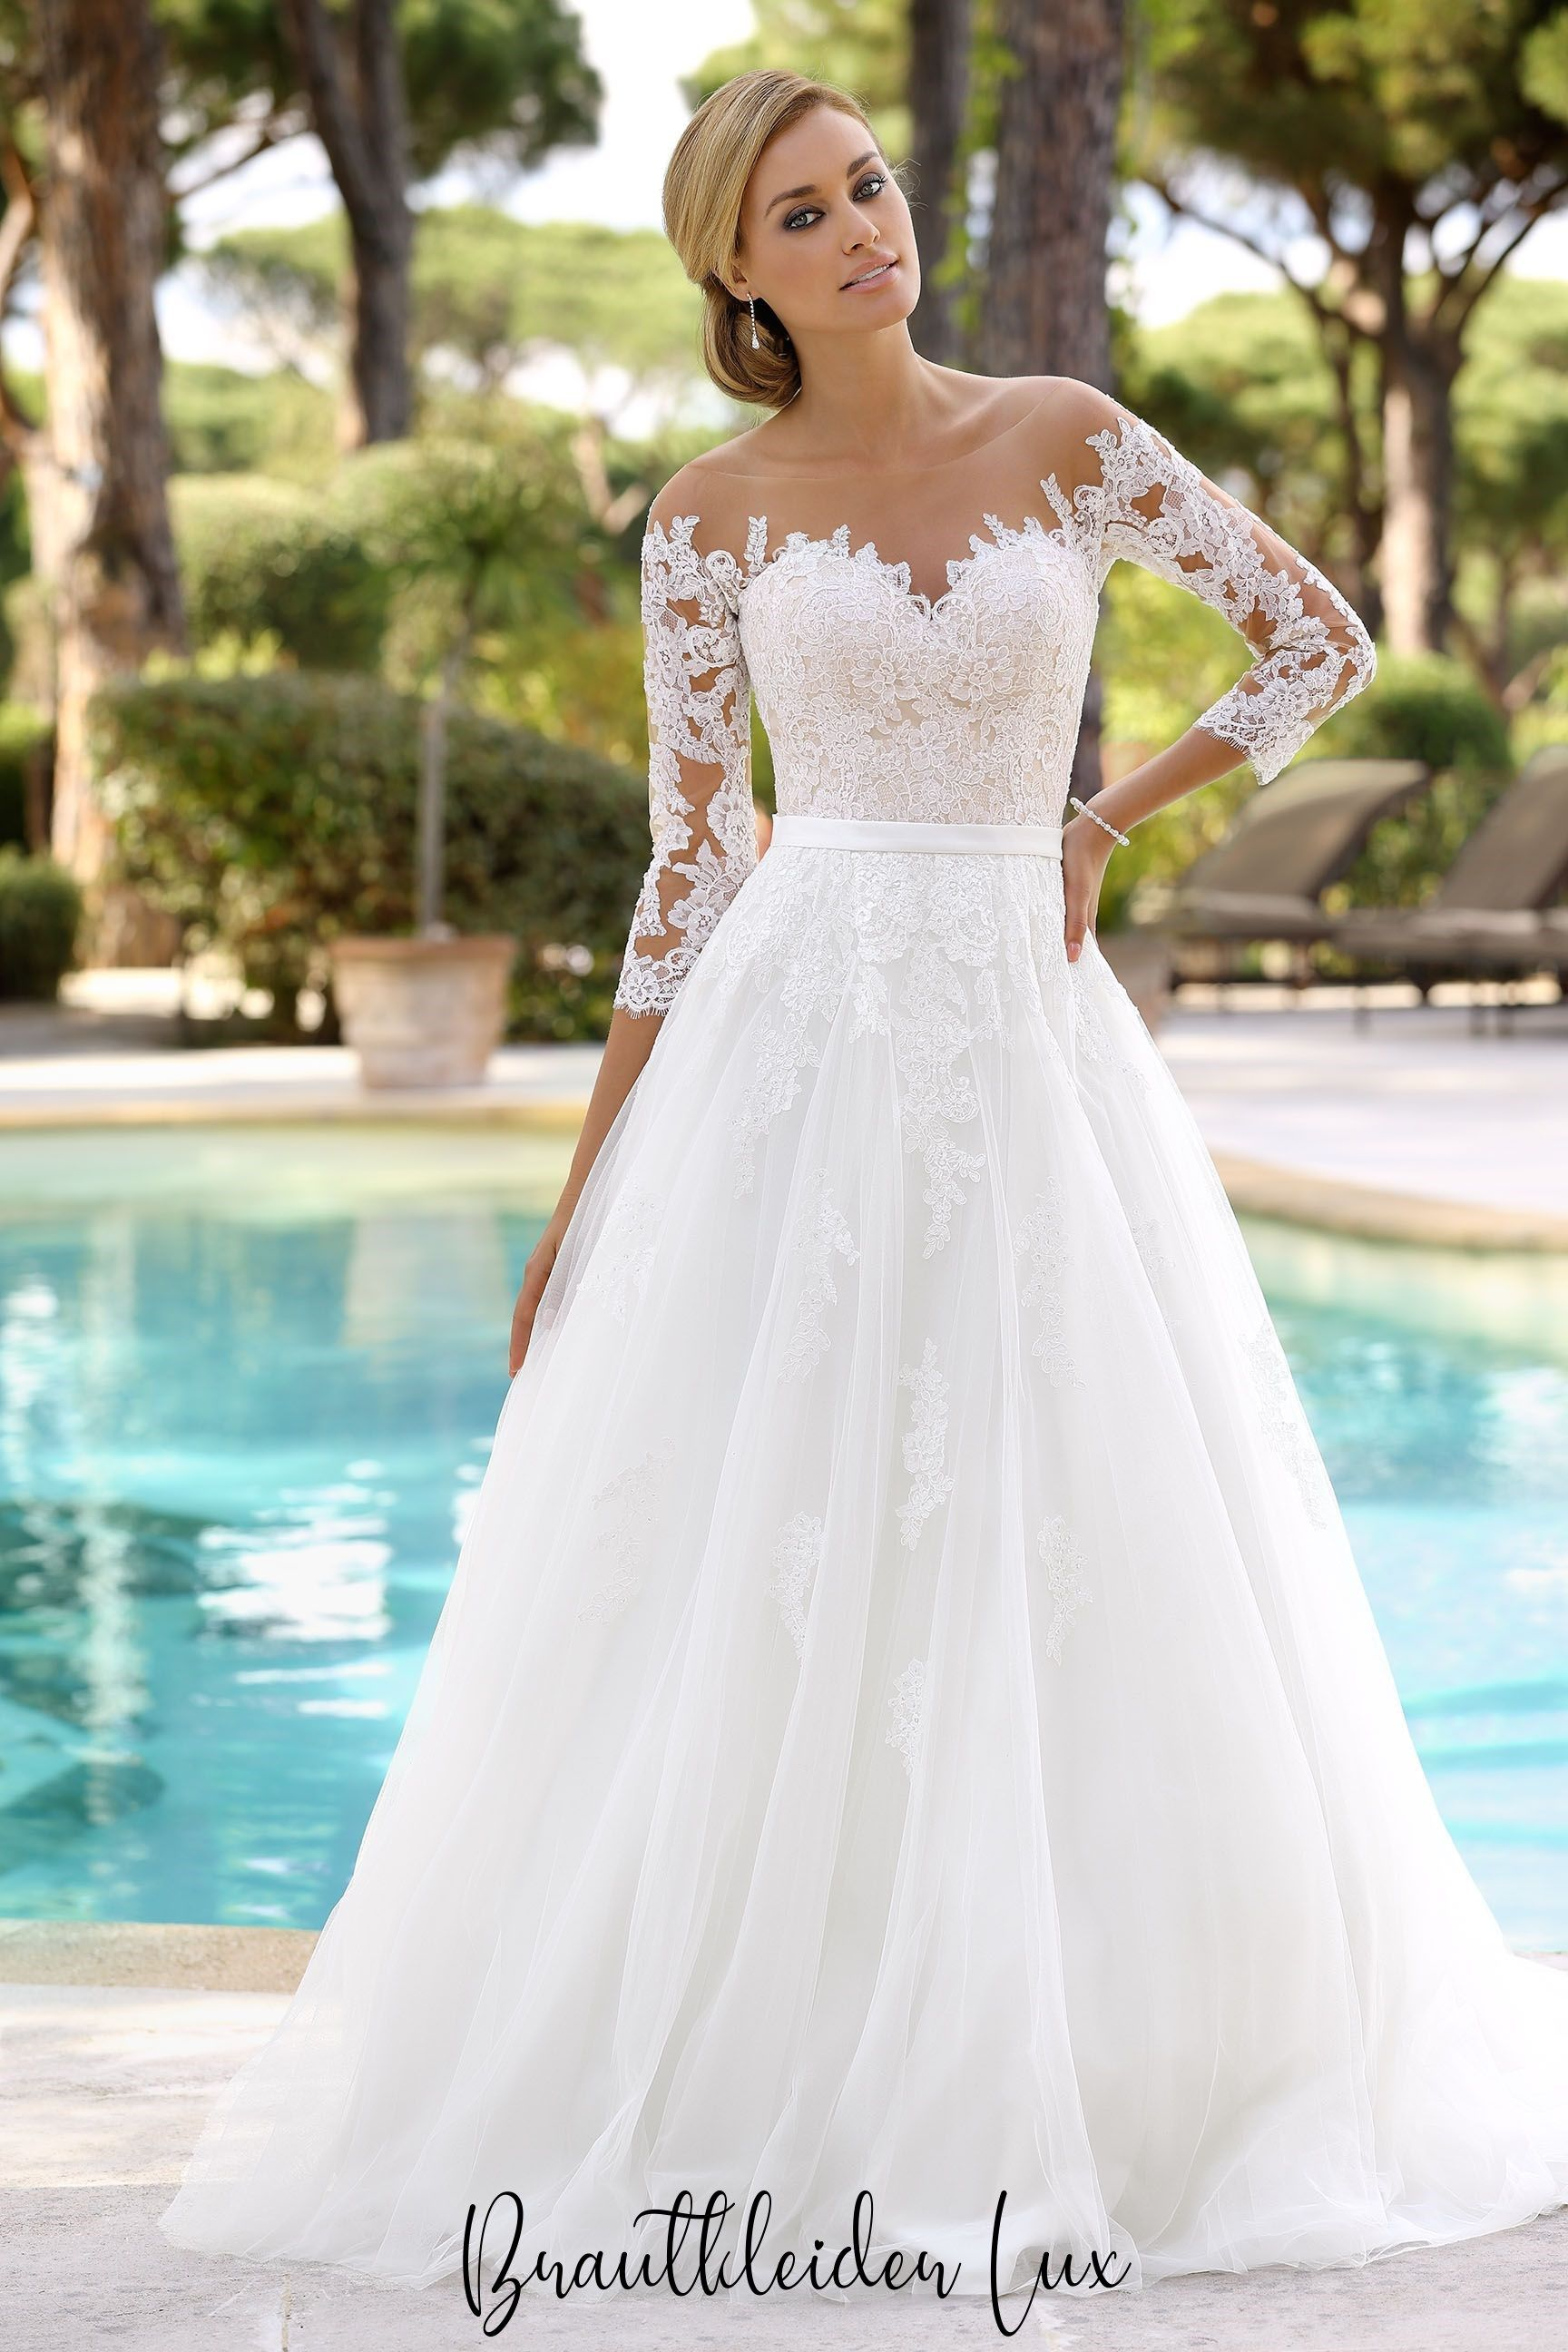 Die Top 4 Brautkleid-Trends 4 in 4  Wedding dresses lace